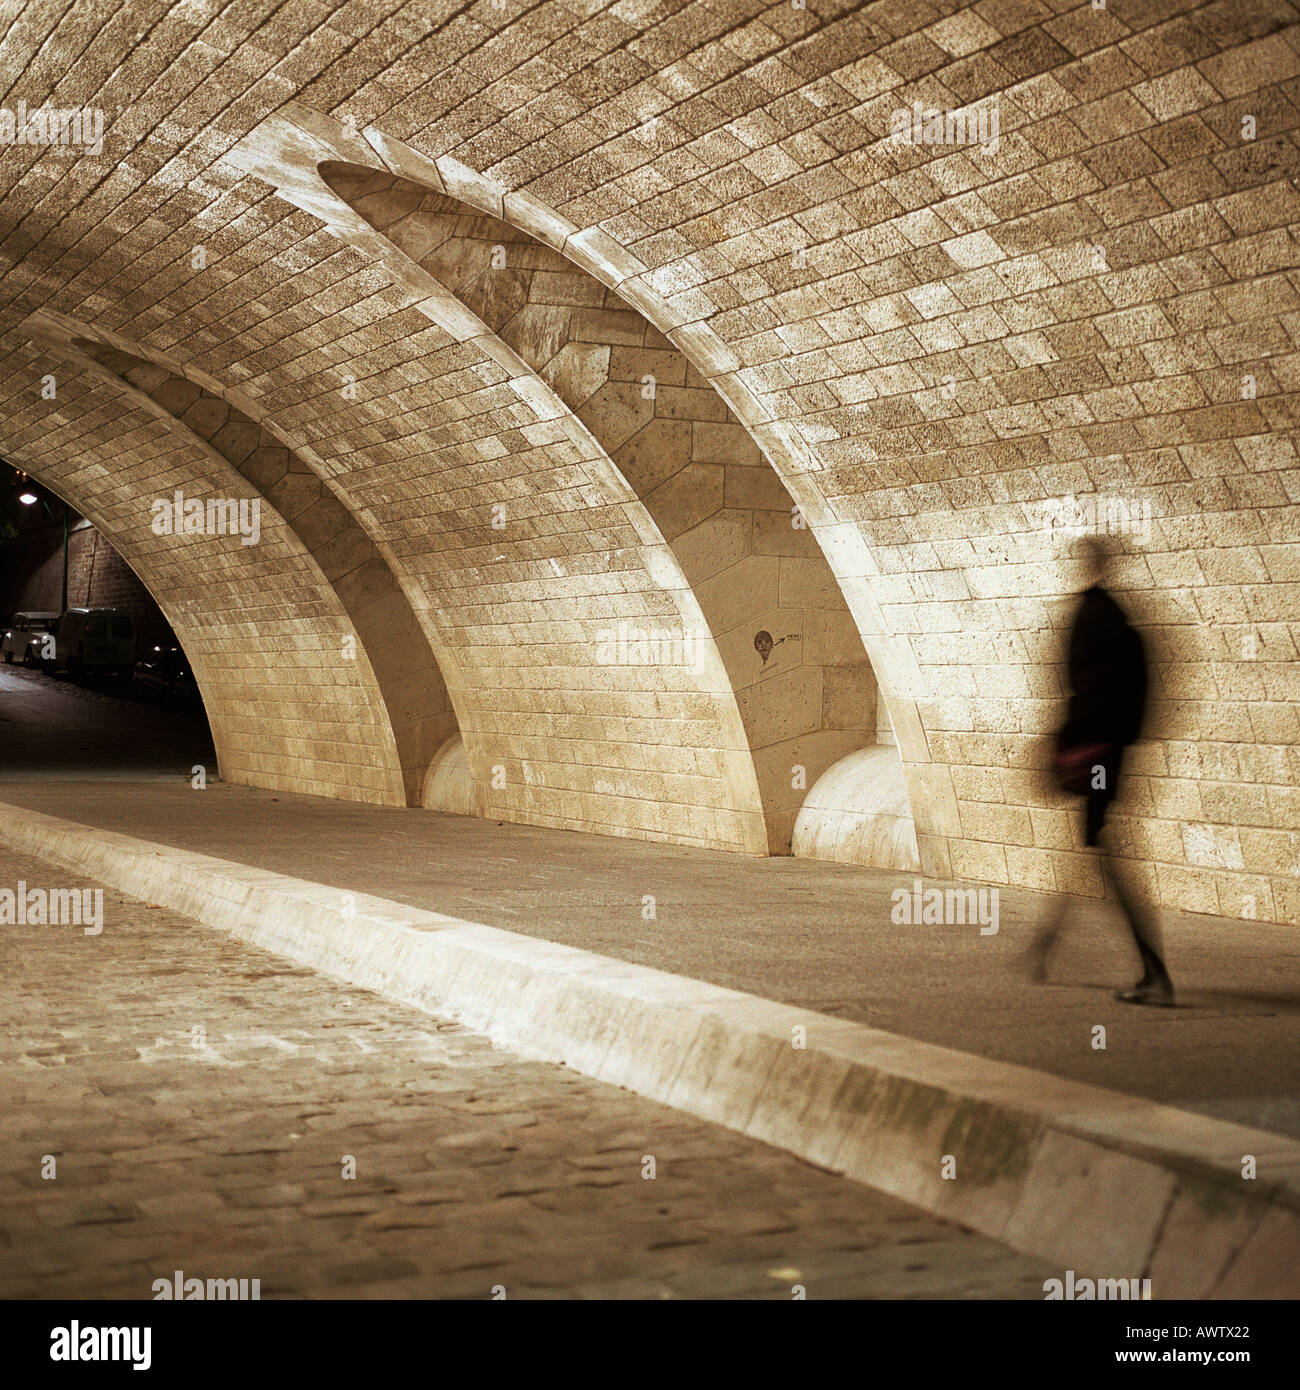 Person walking through tunnel at night Stock Photo